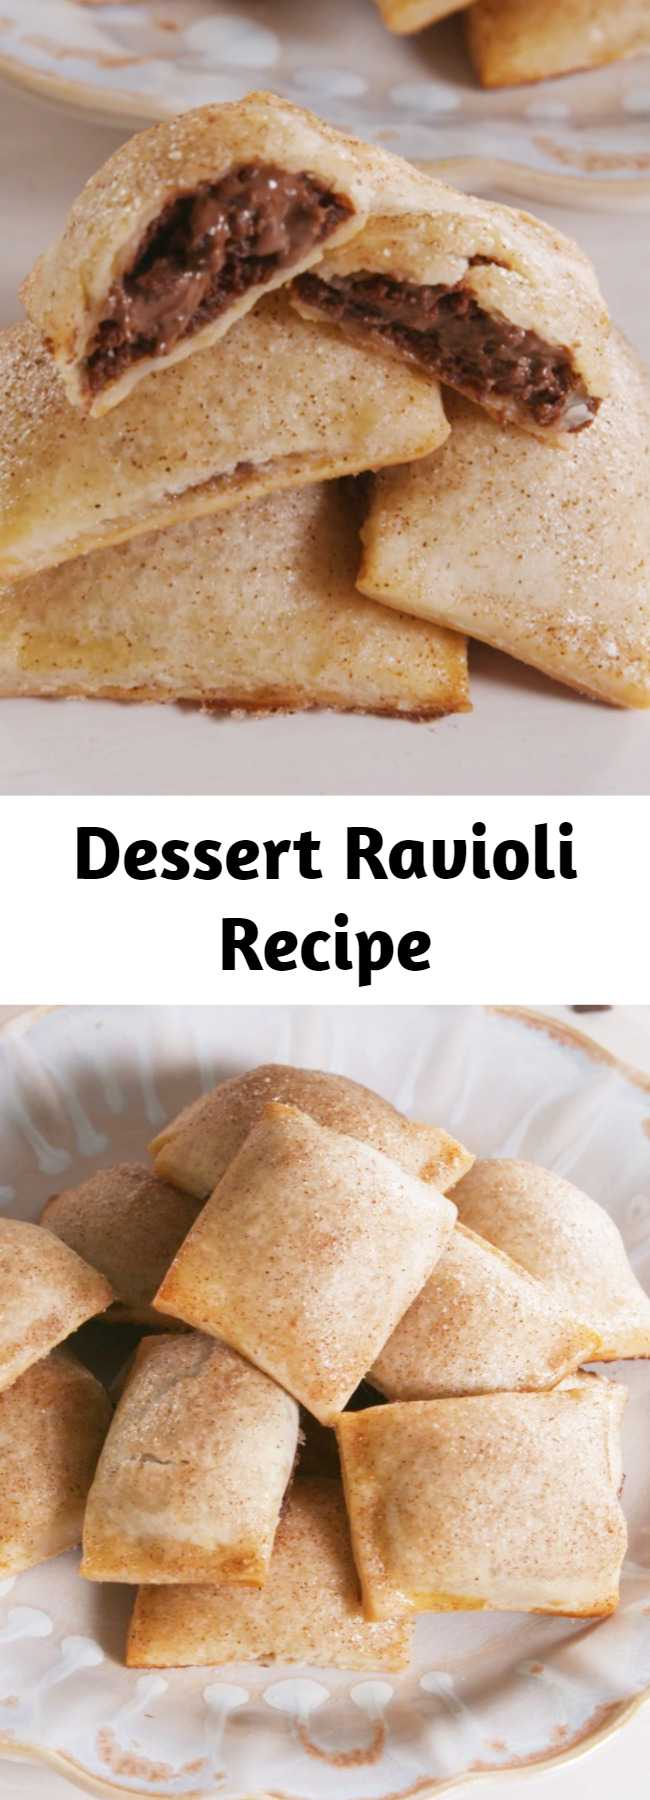 "Dessert Ravioli Recipe - How genius is this method?! You can fill these ""ravioli"" with all sorts of things, from fruit fillings to peanut butter and chocolate. We chose Nutella because we're obsessed with it. This Dessert Ravioli is the BEST thing to do with Nutella. #icecubetrayhacks #piedough #creamcheese #nutella #nutelladesserts #minidesserts"